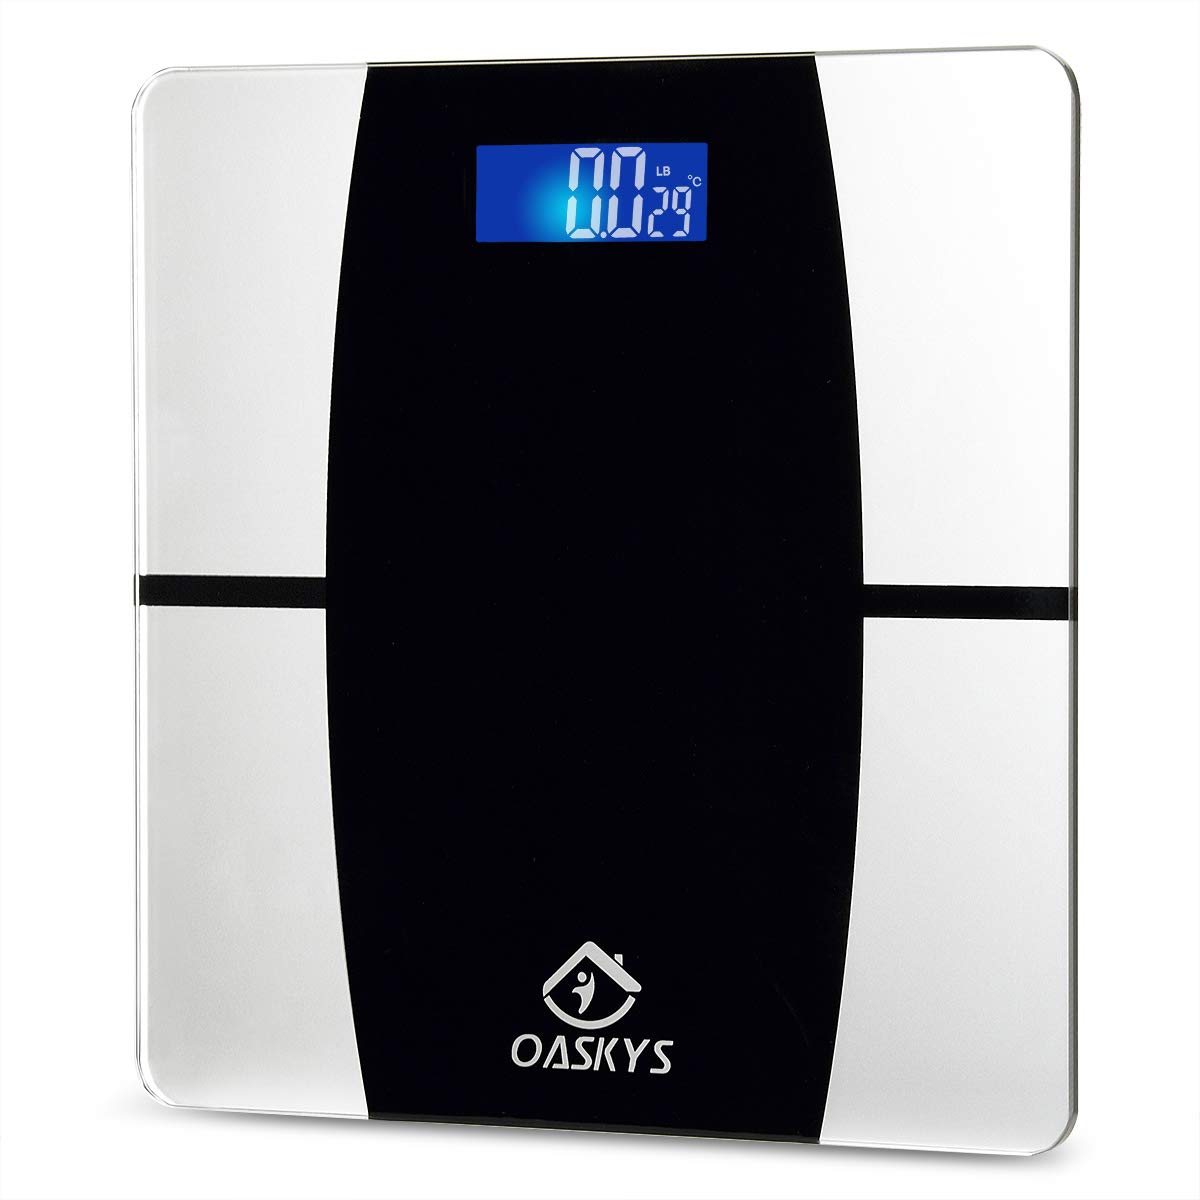 Digital Body Weight Bathroom Scale with Step-On Technology,Temperature Display,6mm Glass and max Weight 400 Pounds(Black-silveryH)